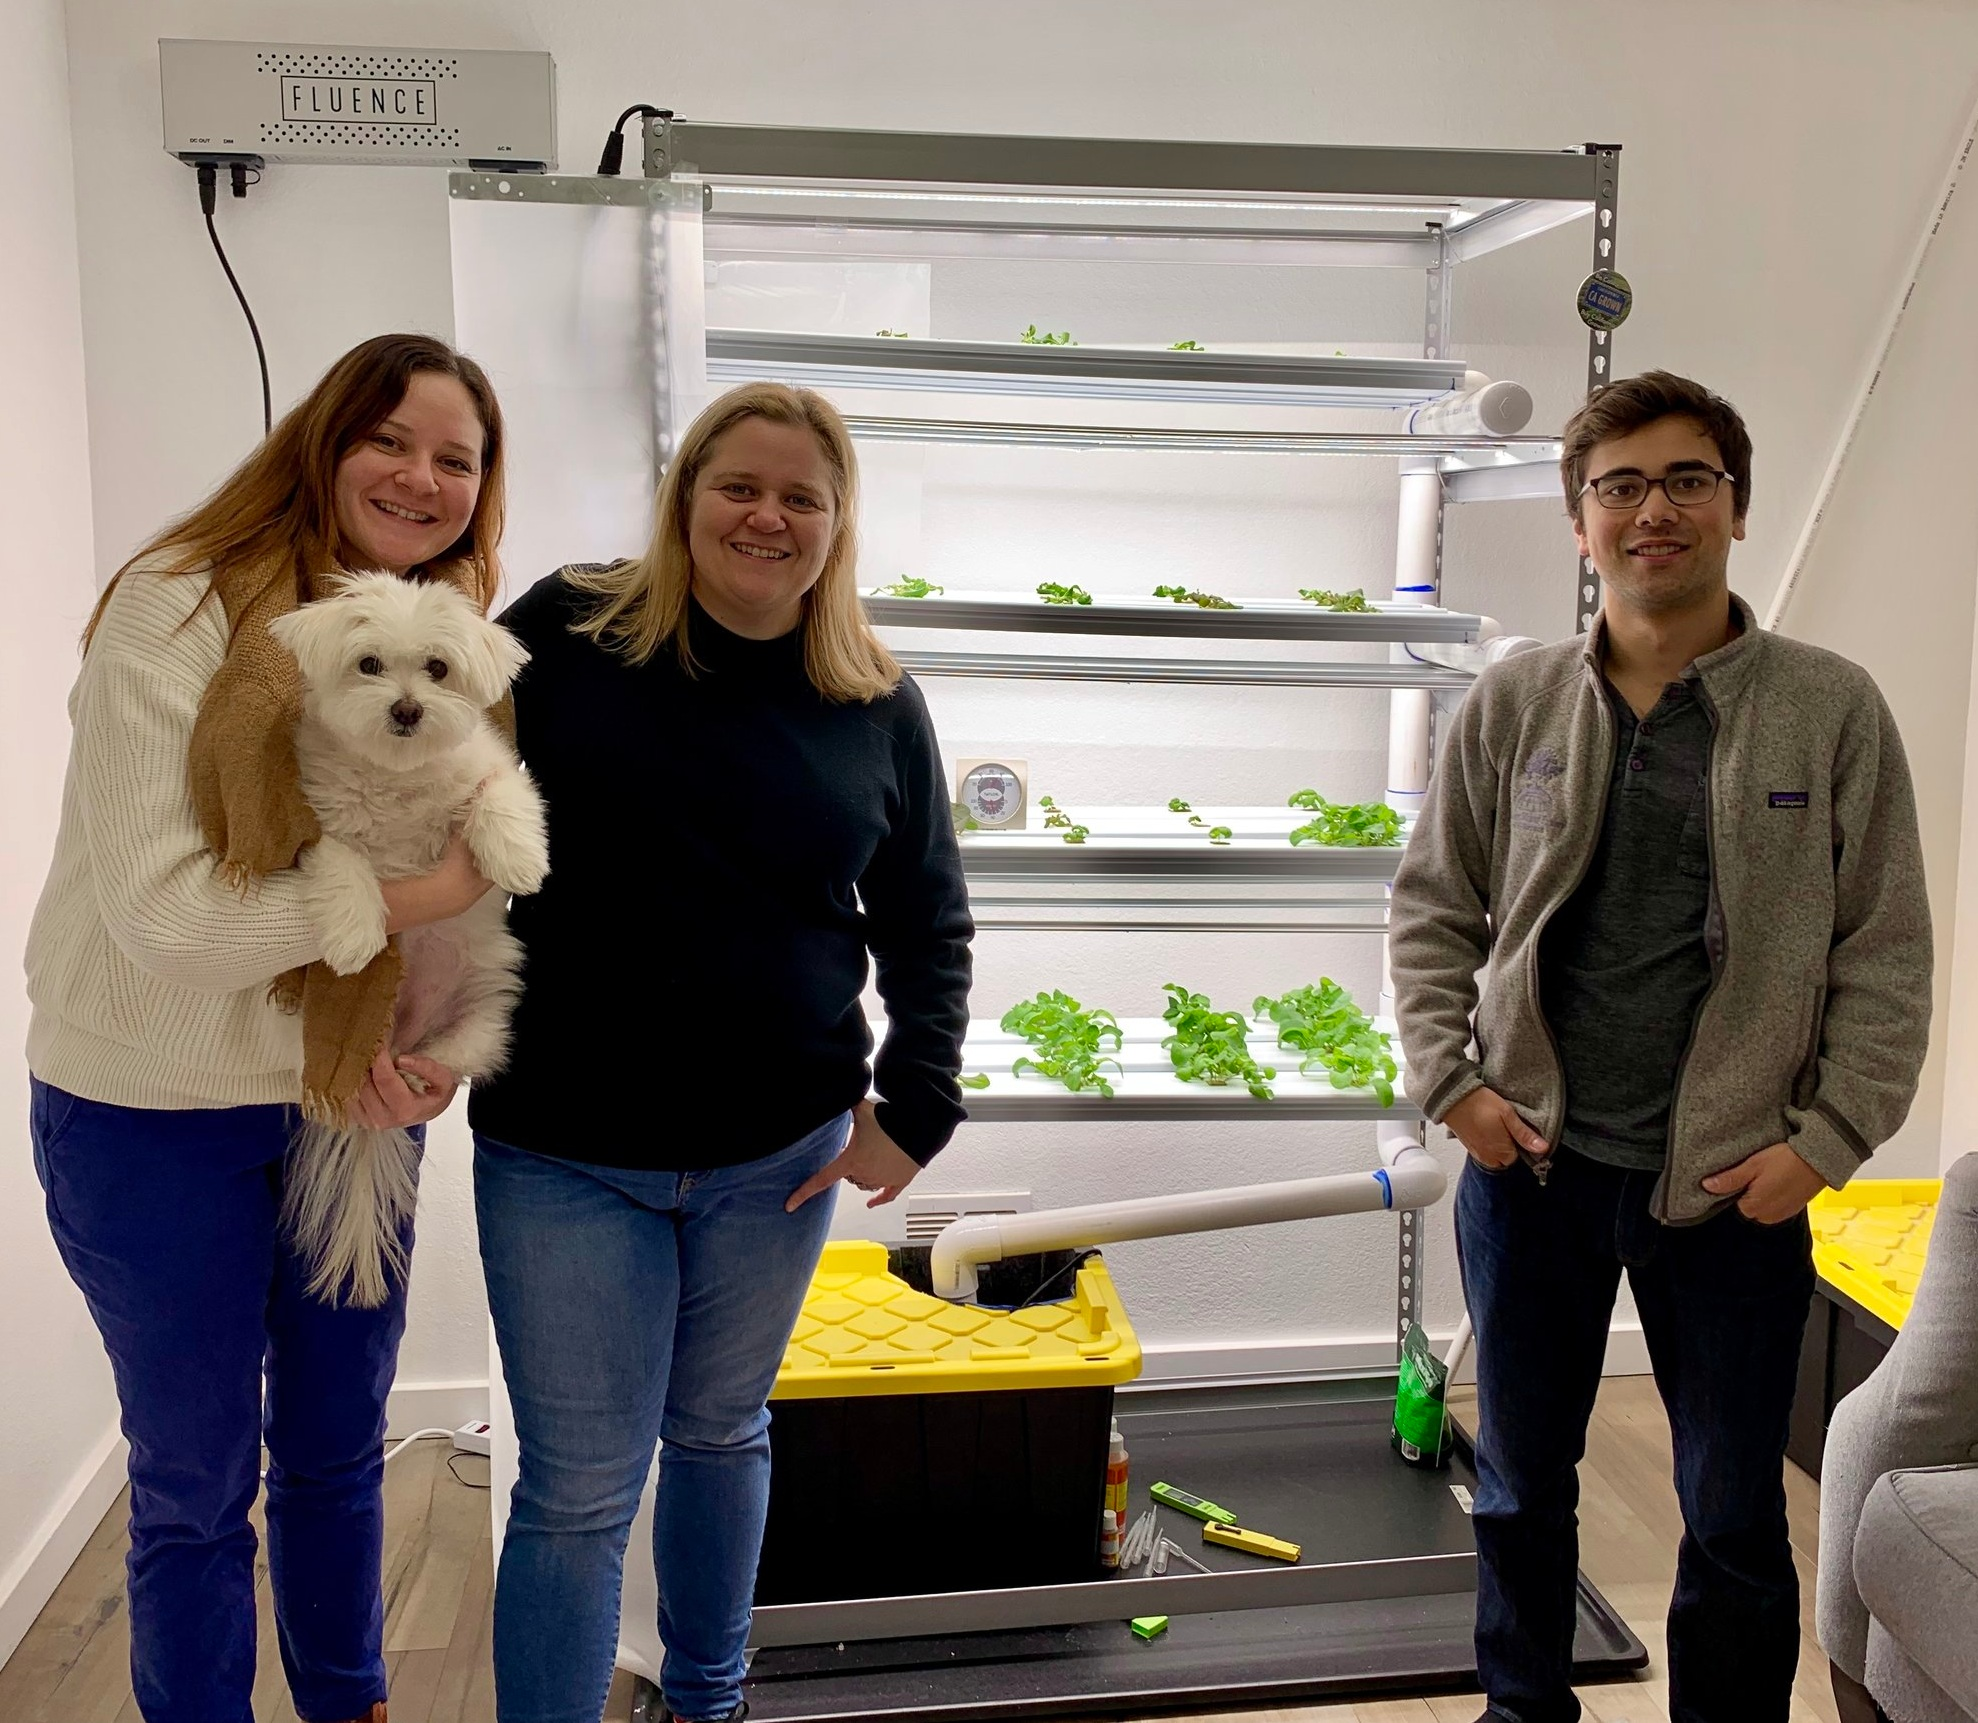 Dr. Greenhouse, Inc. , specializes in controlled environment agriculture, engineering HVAC systems for indoor farms. So, when they moved into their new office last summer, they decided to build a +Farm for educational purposes, for good Feng Shui, for team-building, and for the promotion of our services.